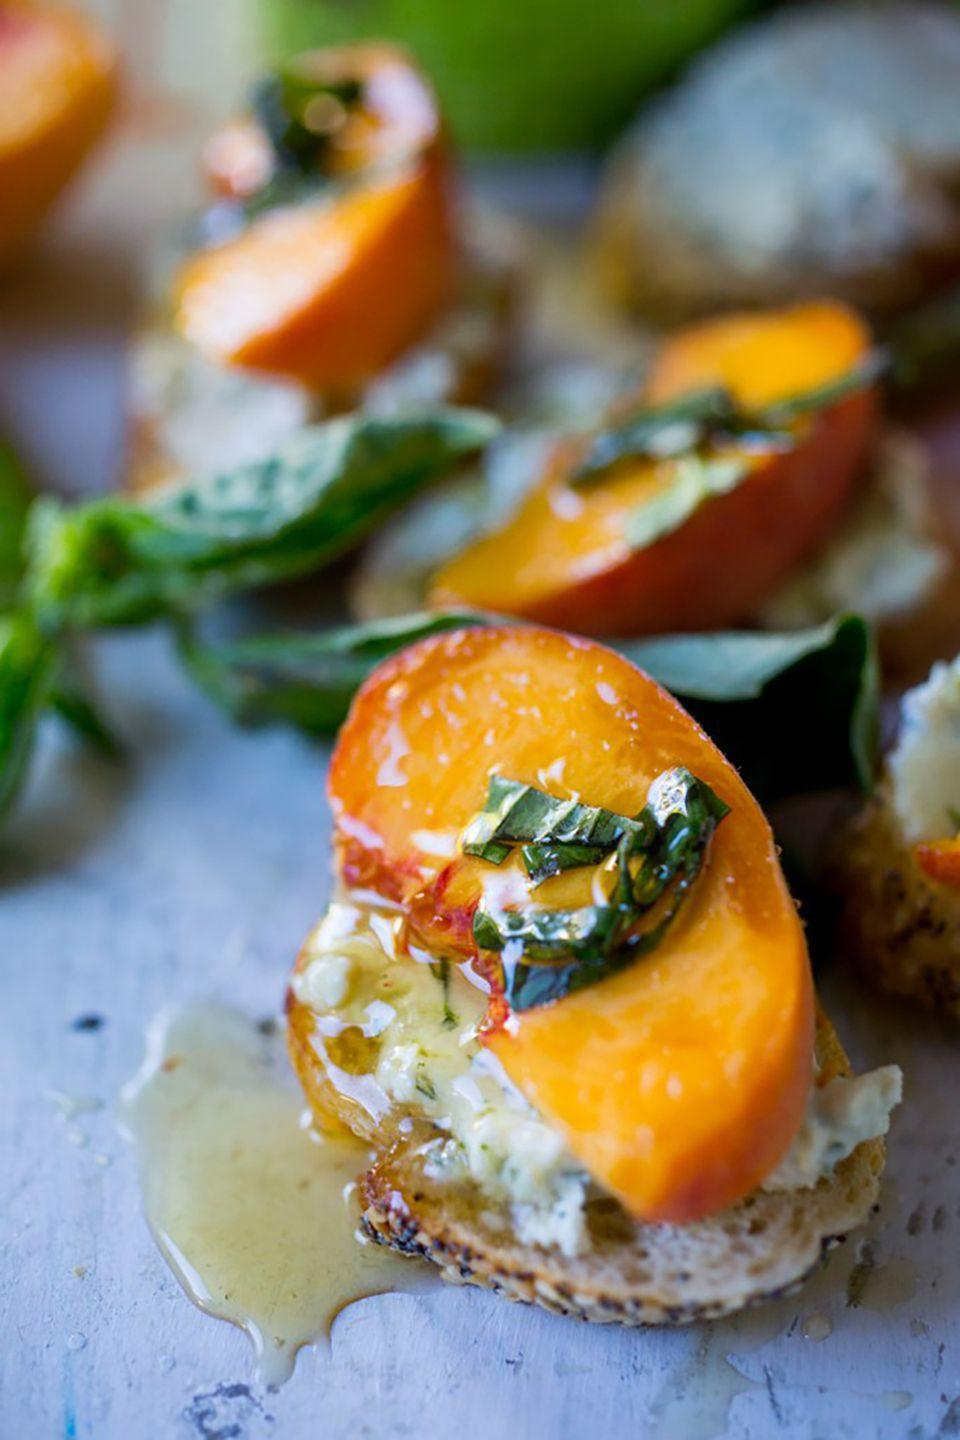 "<p><span class=""redactor-invisible-space"">The sweet combination of peach and honey is offset by a savory smothering of goat cheese.</span></p><p><strong>Get the recipe at <a href=""http://www.feastingathome.com/peach-bruschetta-with-goat-cheese/"" rel=""nofollow noopener"" target=""_blank"" data-ylk=""slk:Feasting at Home"" class=""link rapid-noclick-resp"">Feasting at Home</a>.</strong></p>"